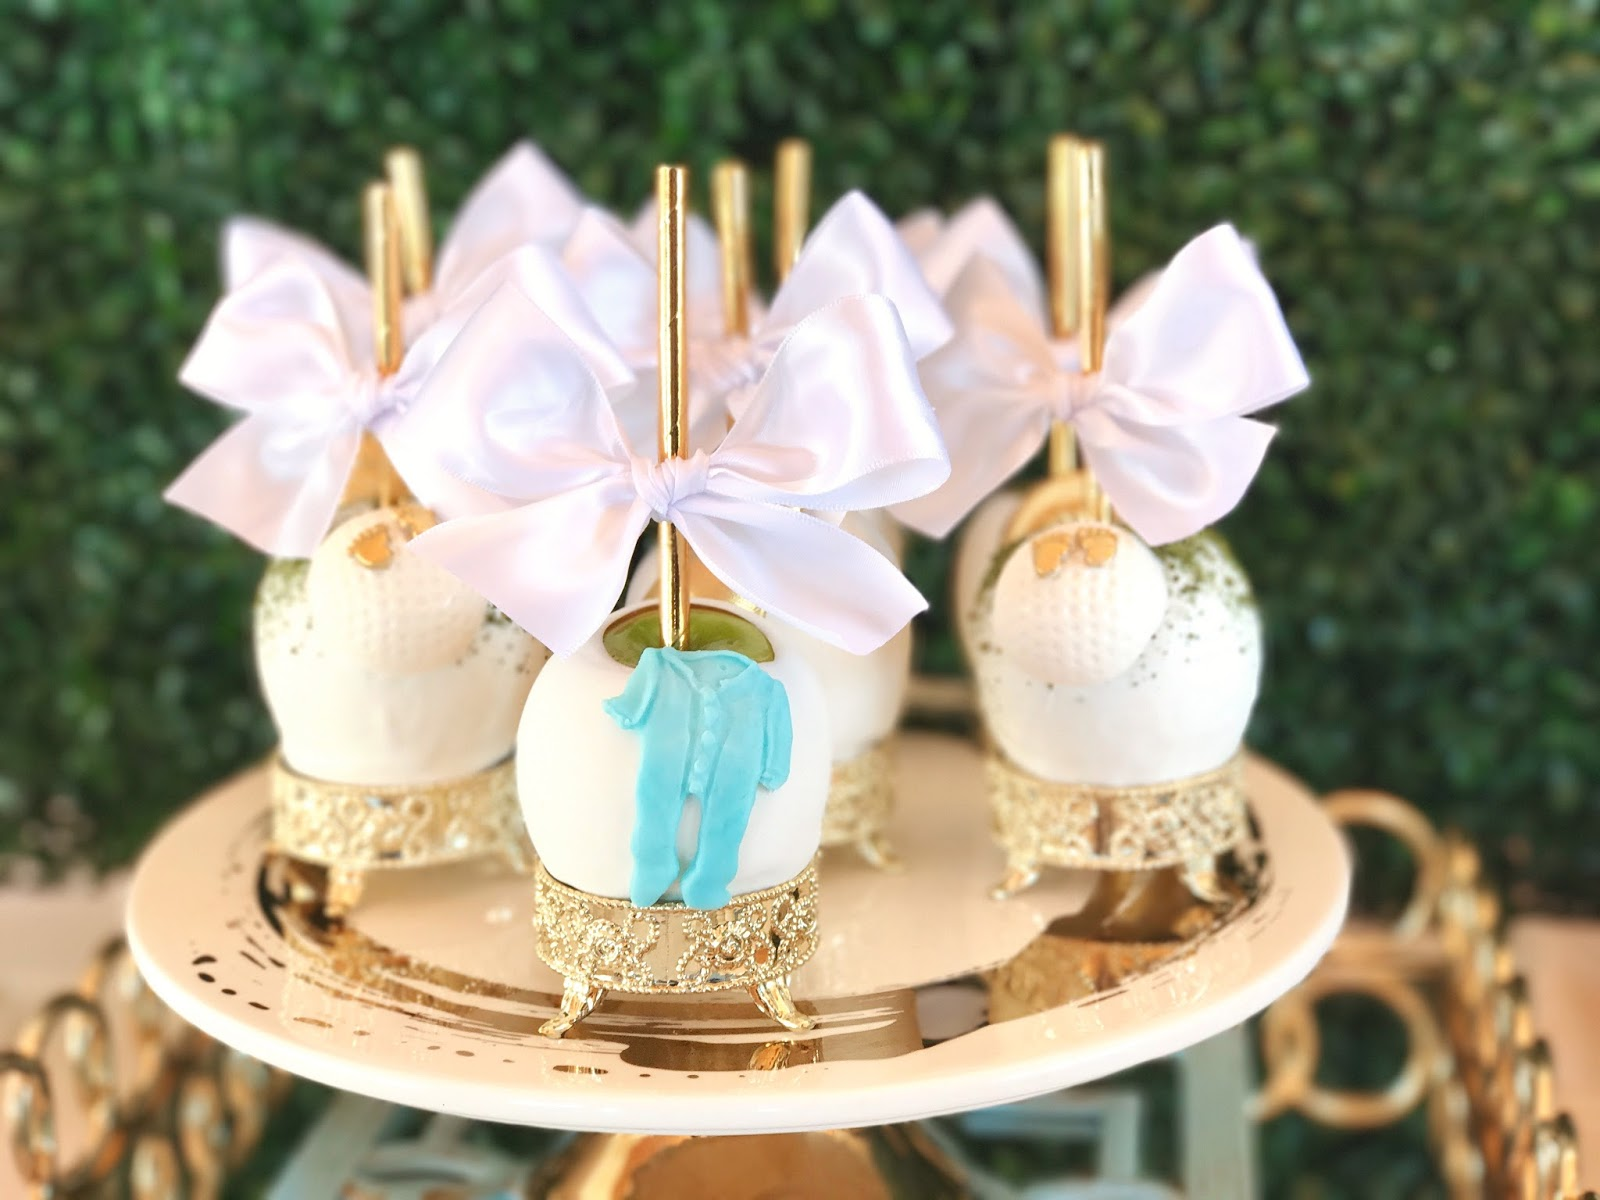 Chic Baby Shower, chic candied apples, elegant candied apples